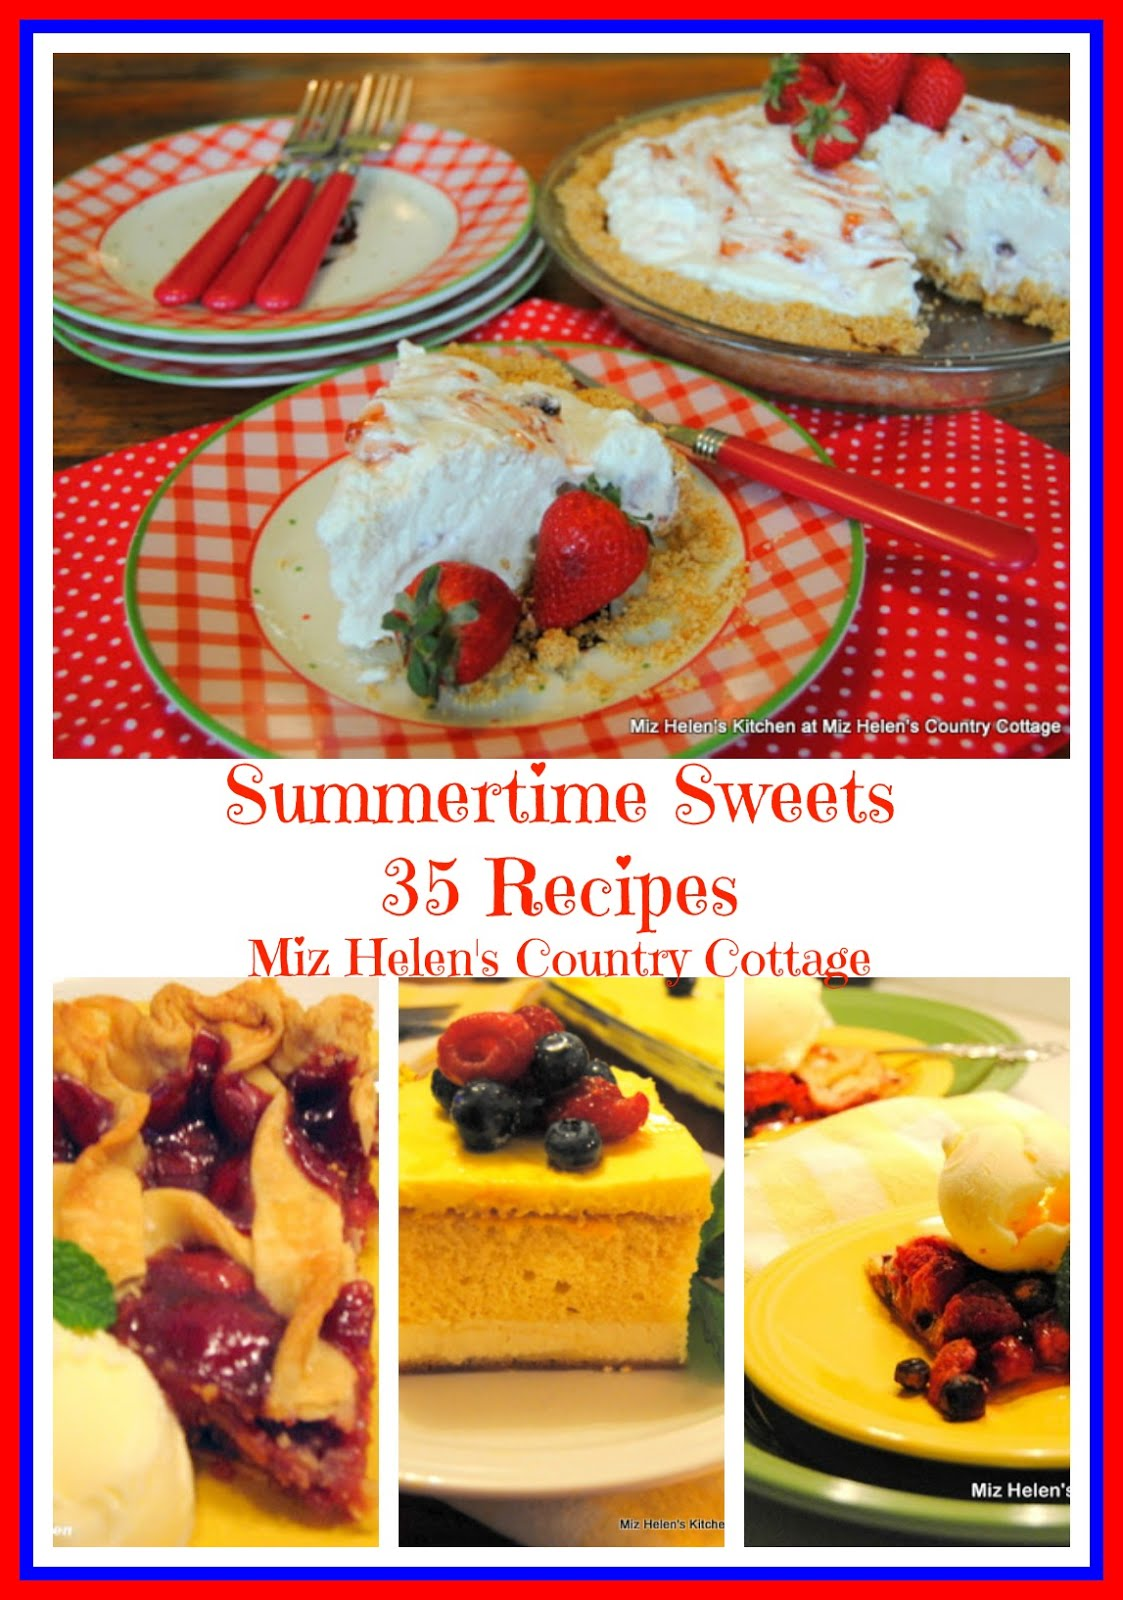 35 Summertime Sweets Recipe Collection